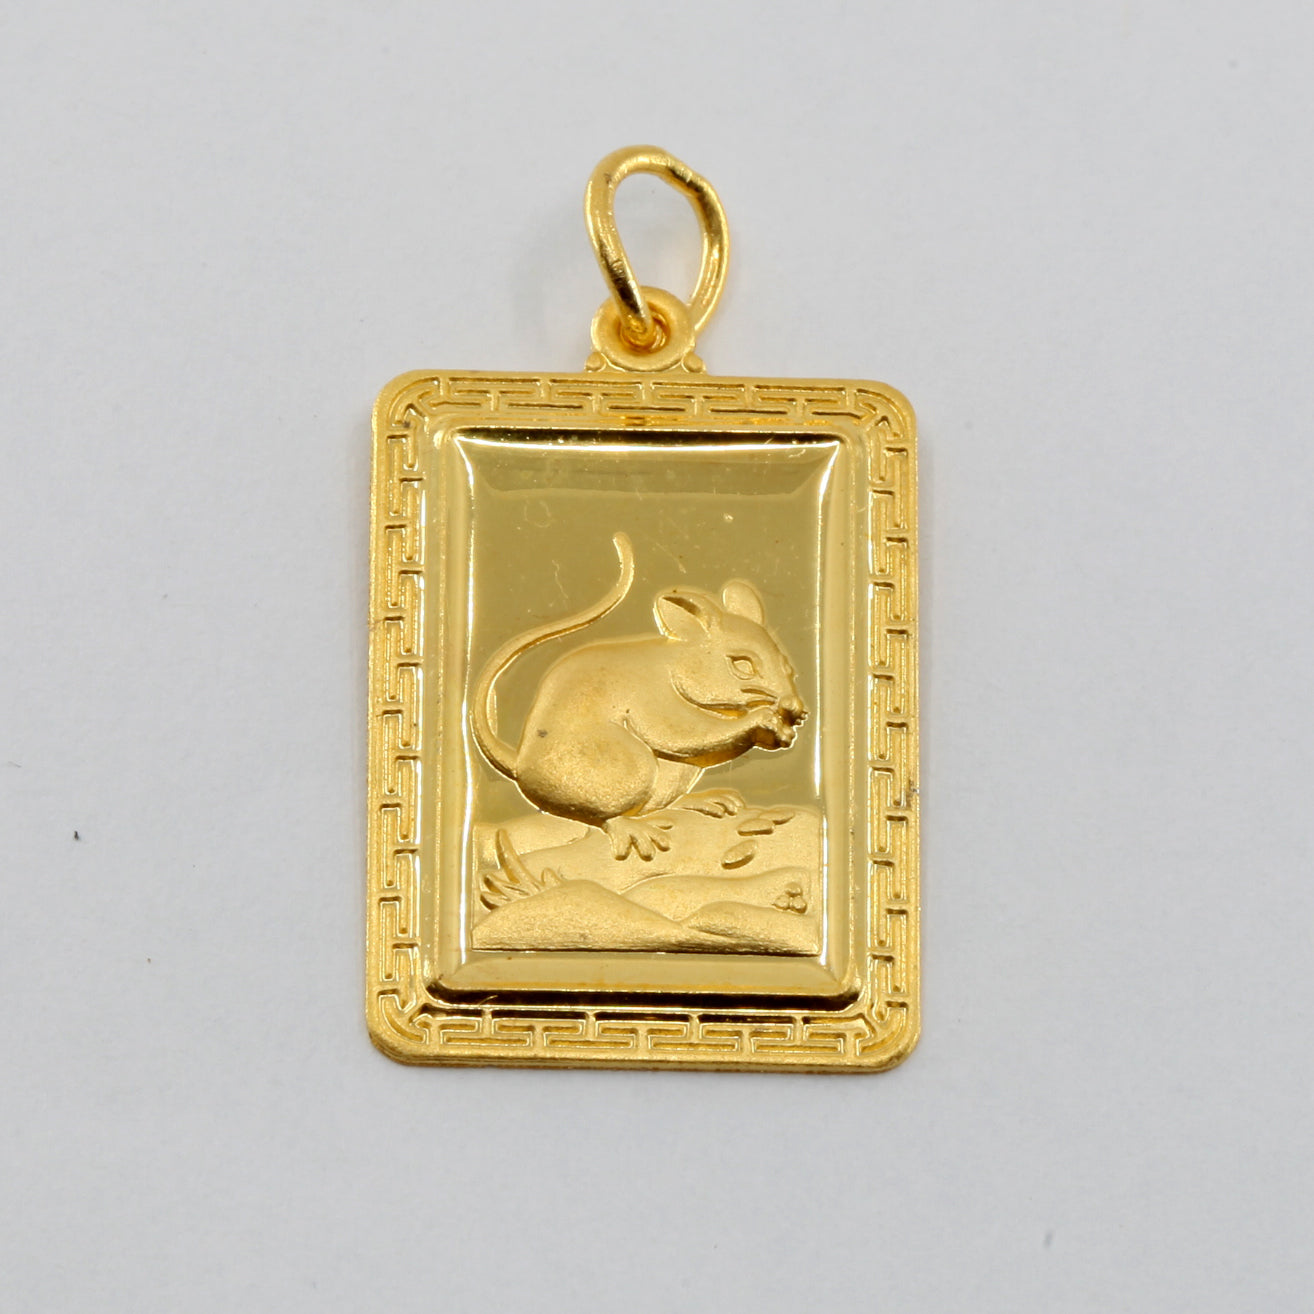 24K Solid Yellow Gold Rectangular Zodiac Rat Pendant 6.6 Grams